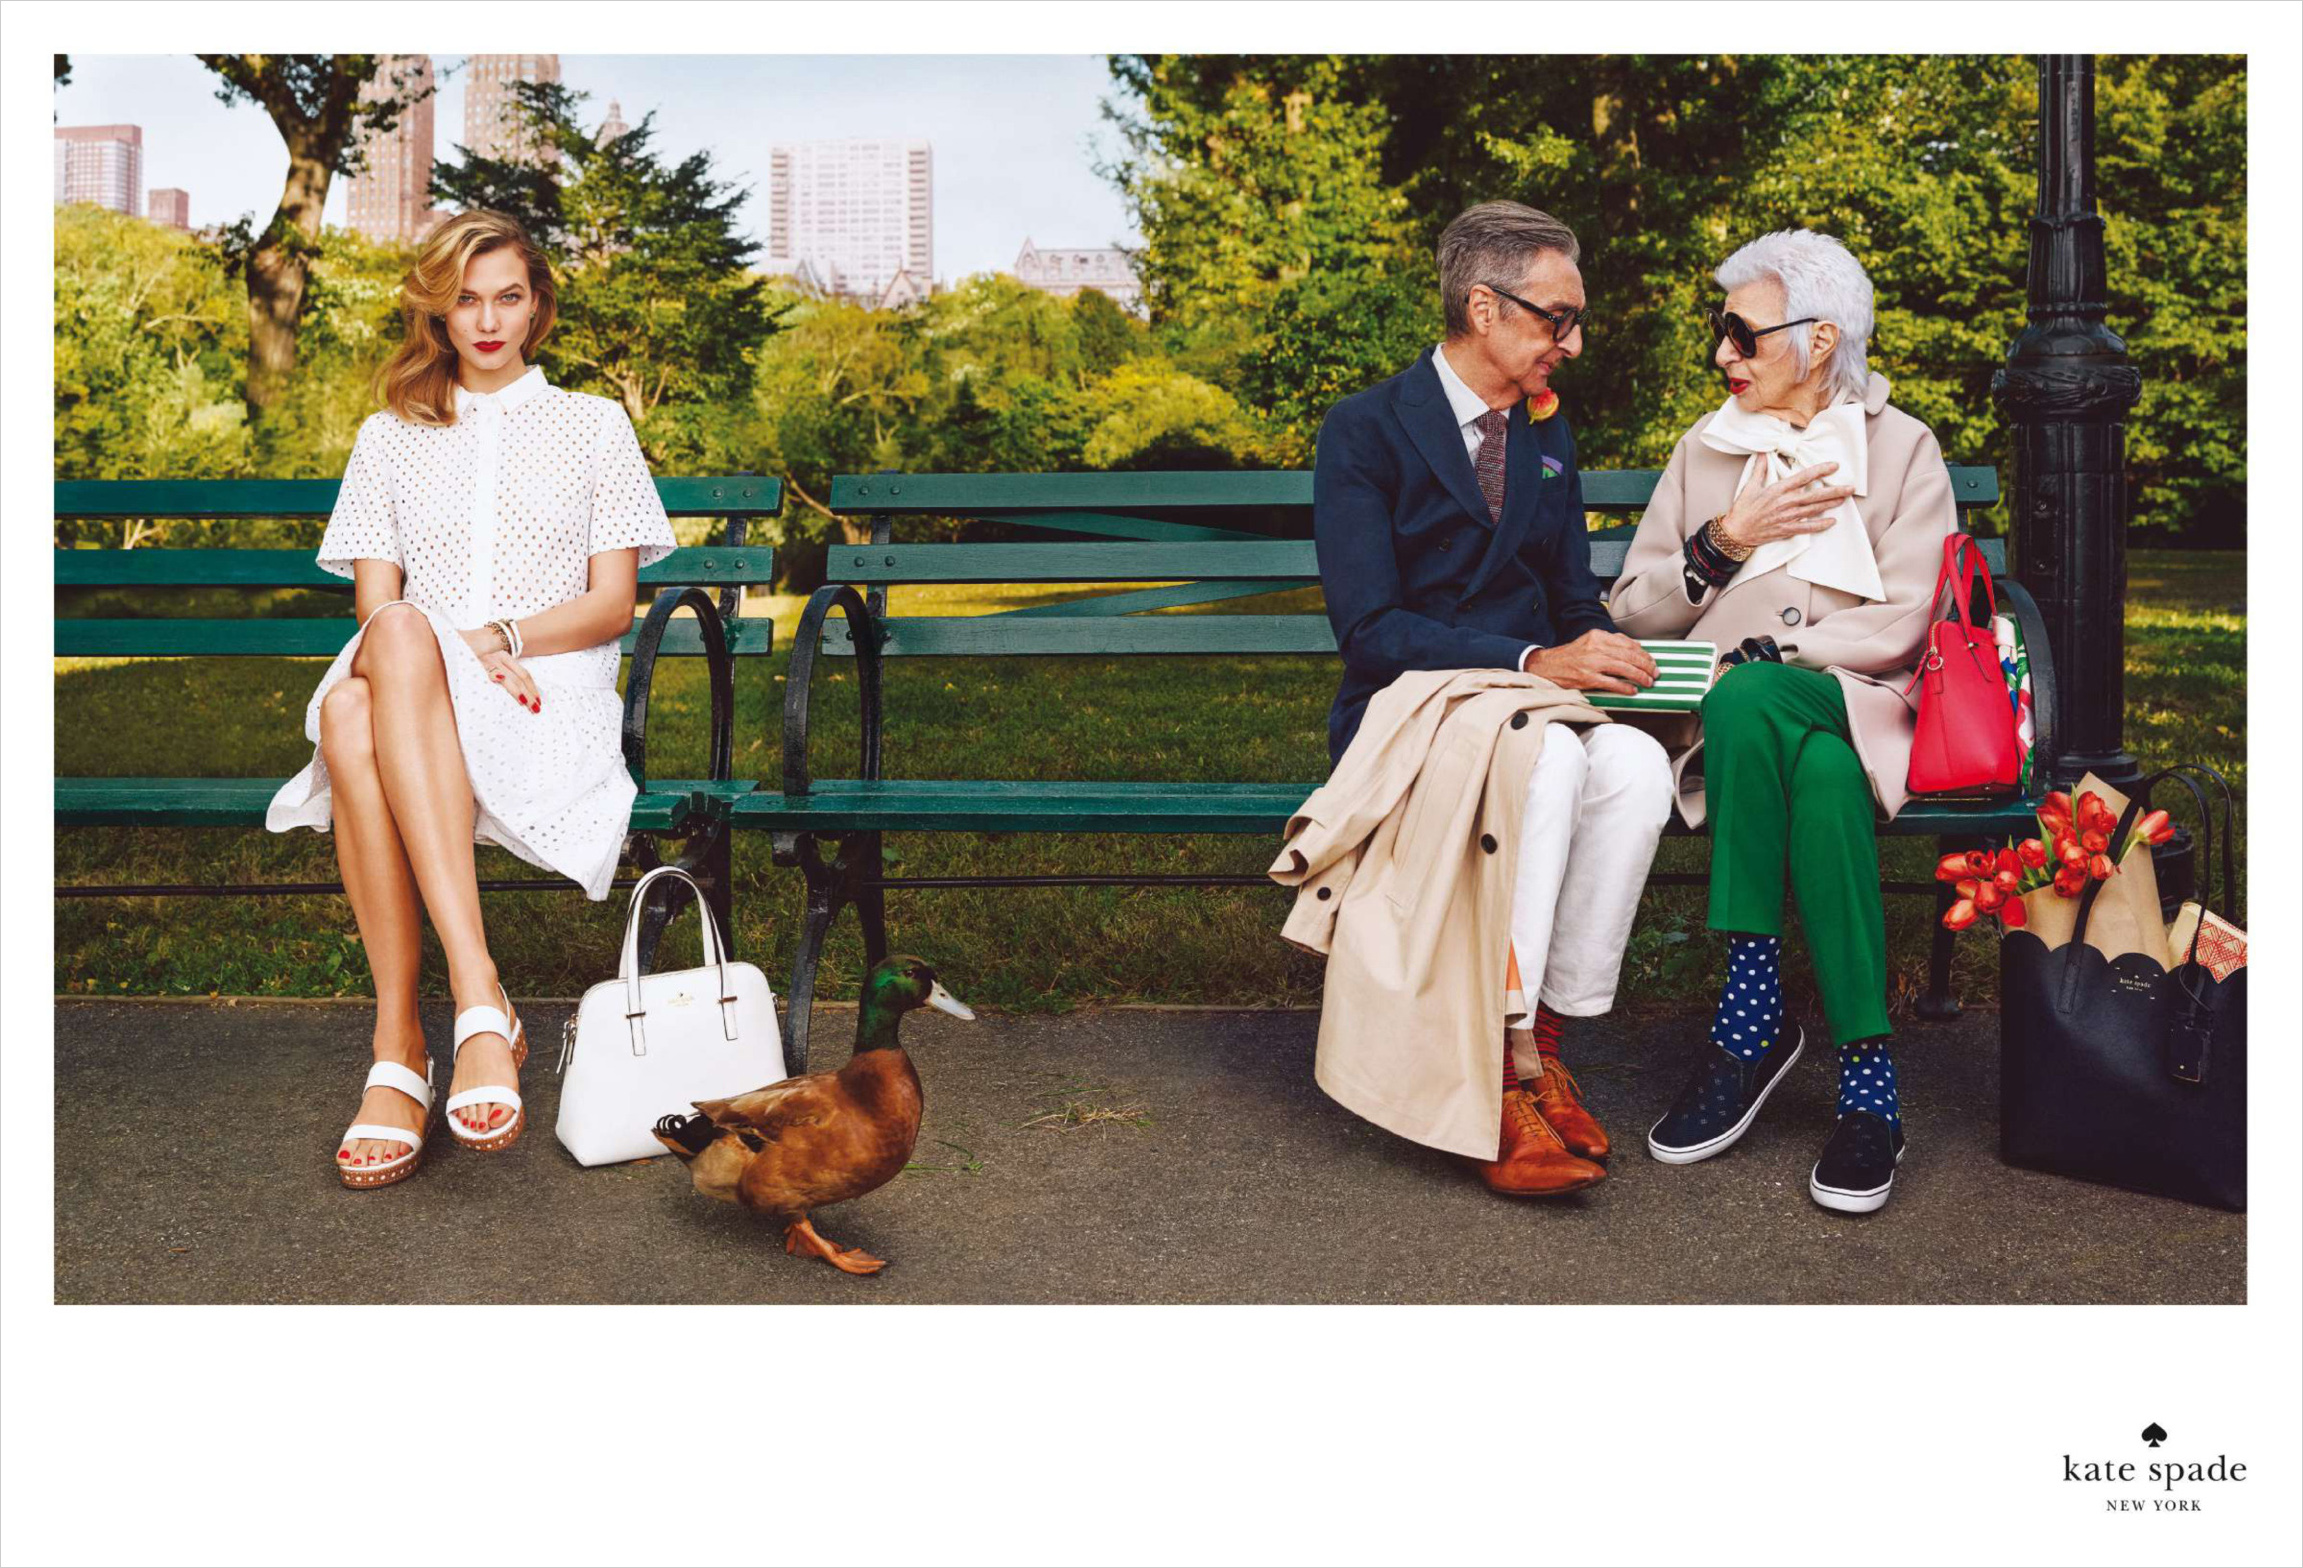 kate-spade-spring-ad campaign-2015-the-impression-02